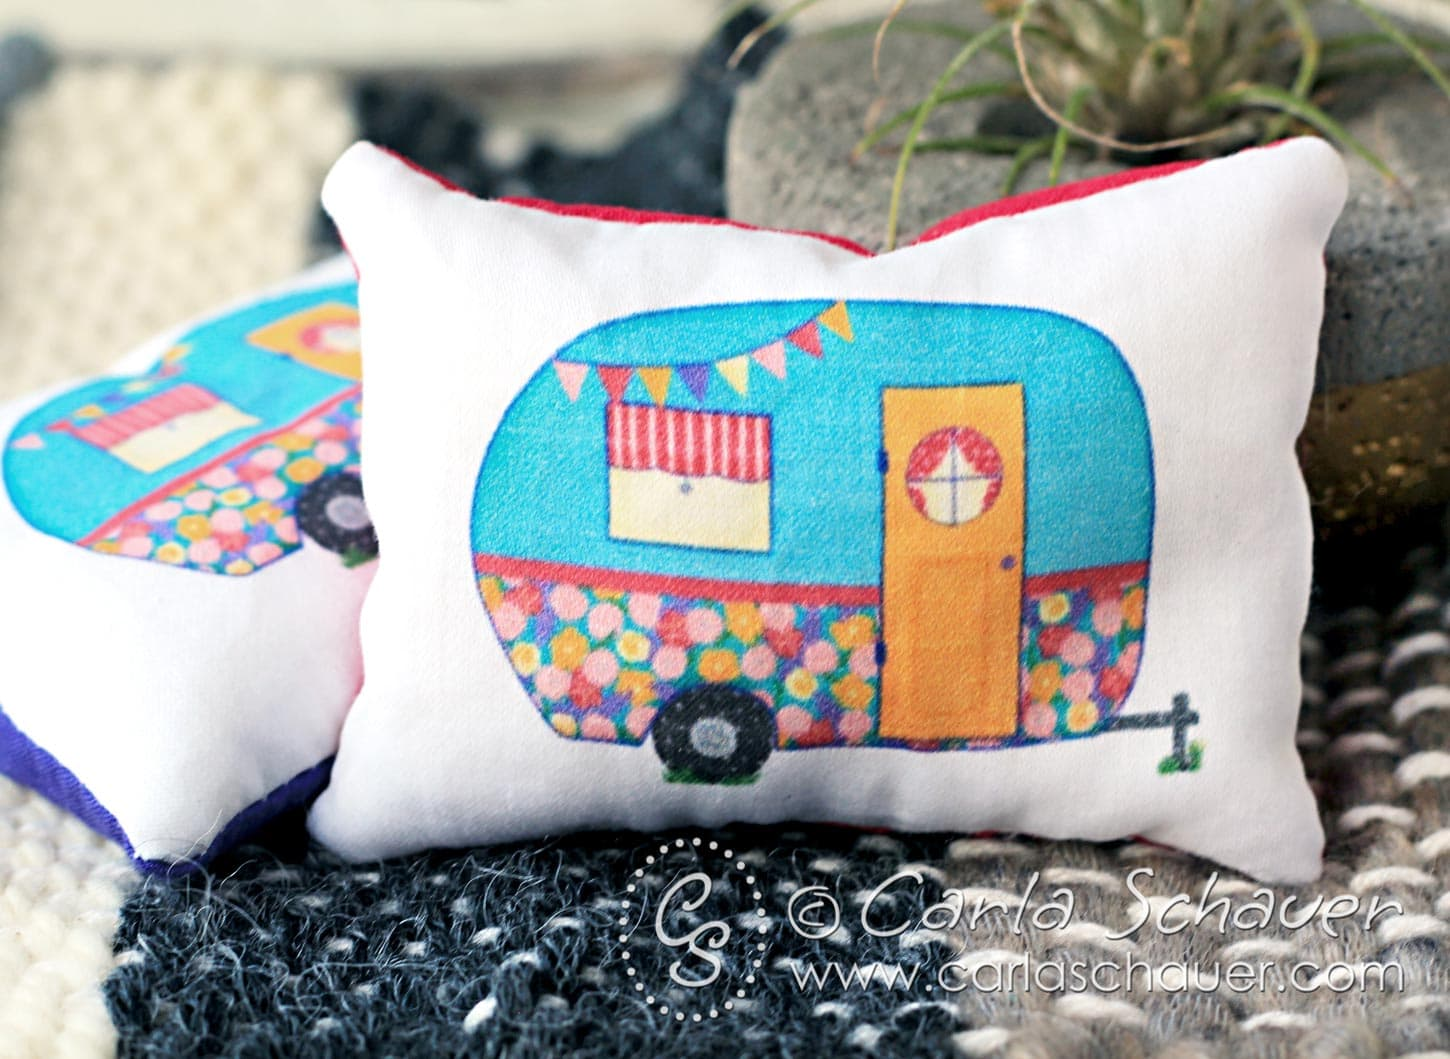 These are adorable! Vintage camper reusable hand warmers. Perfect stocking stuffer idea! | Carla Schauer Designs